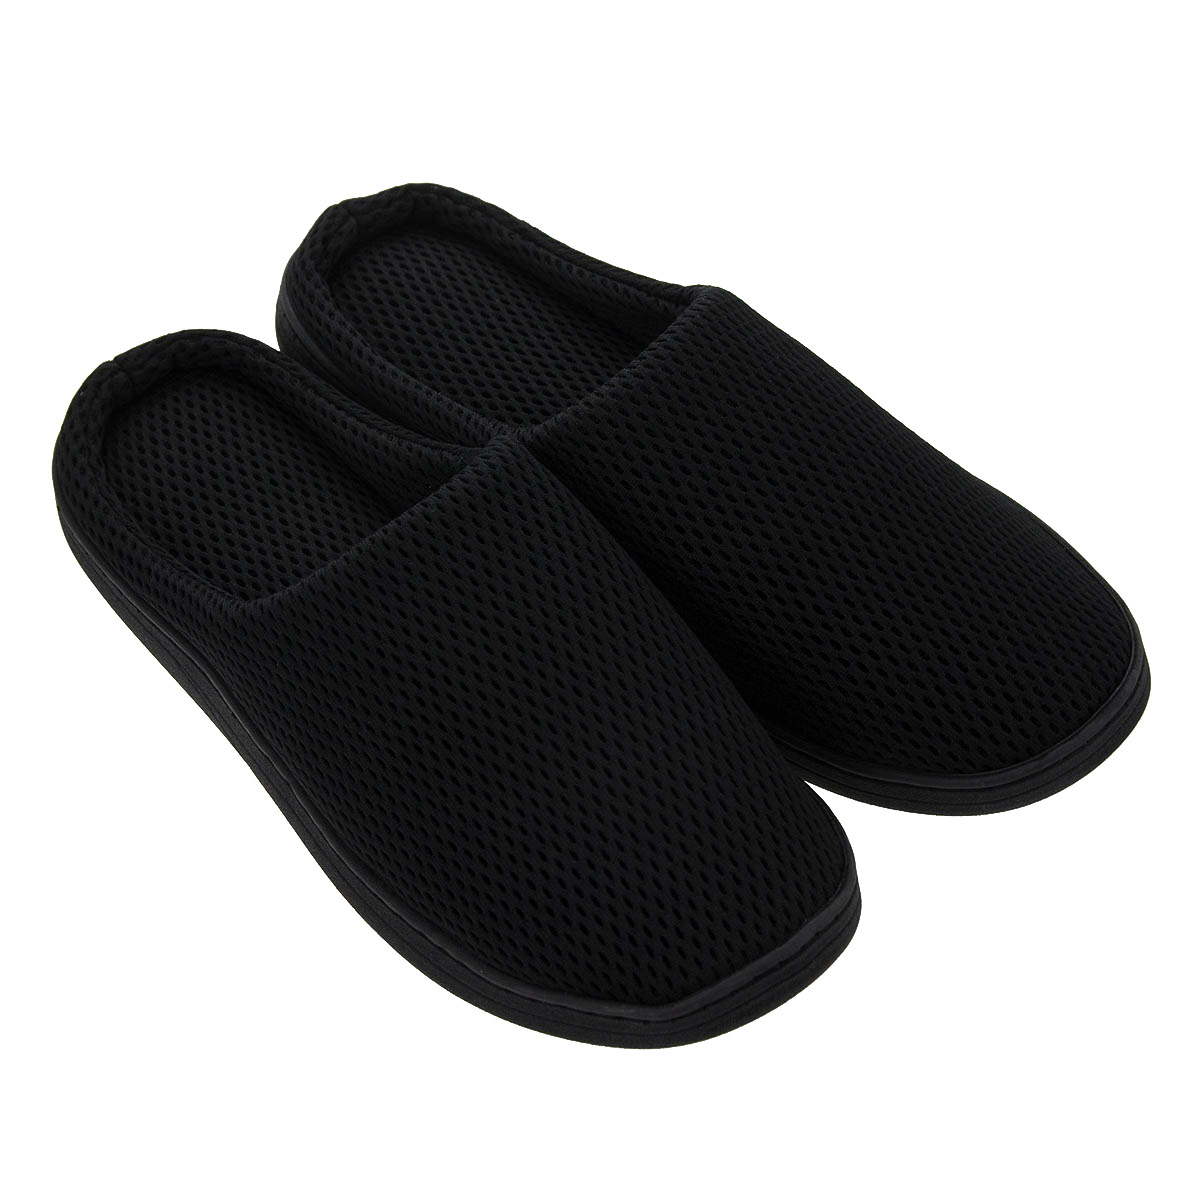 Image of Airia Perfect Temperature Slippers Menâ s Womenâ s Breathable Mesh Arch Support